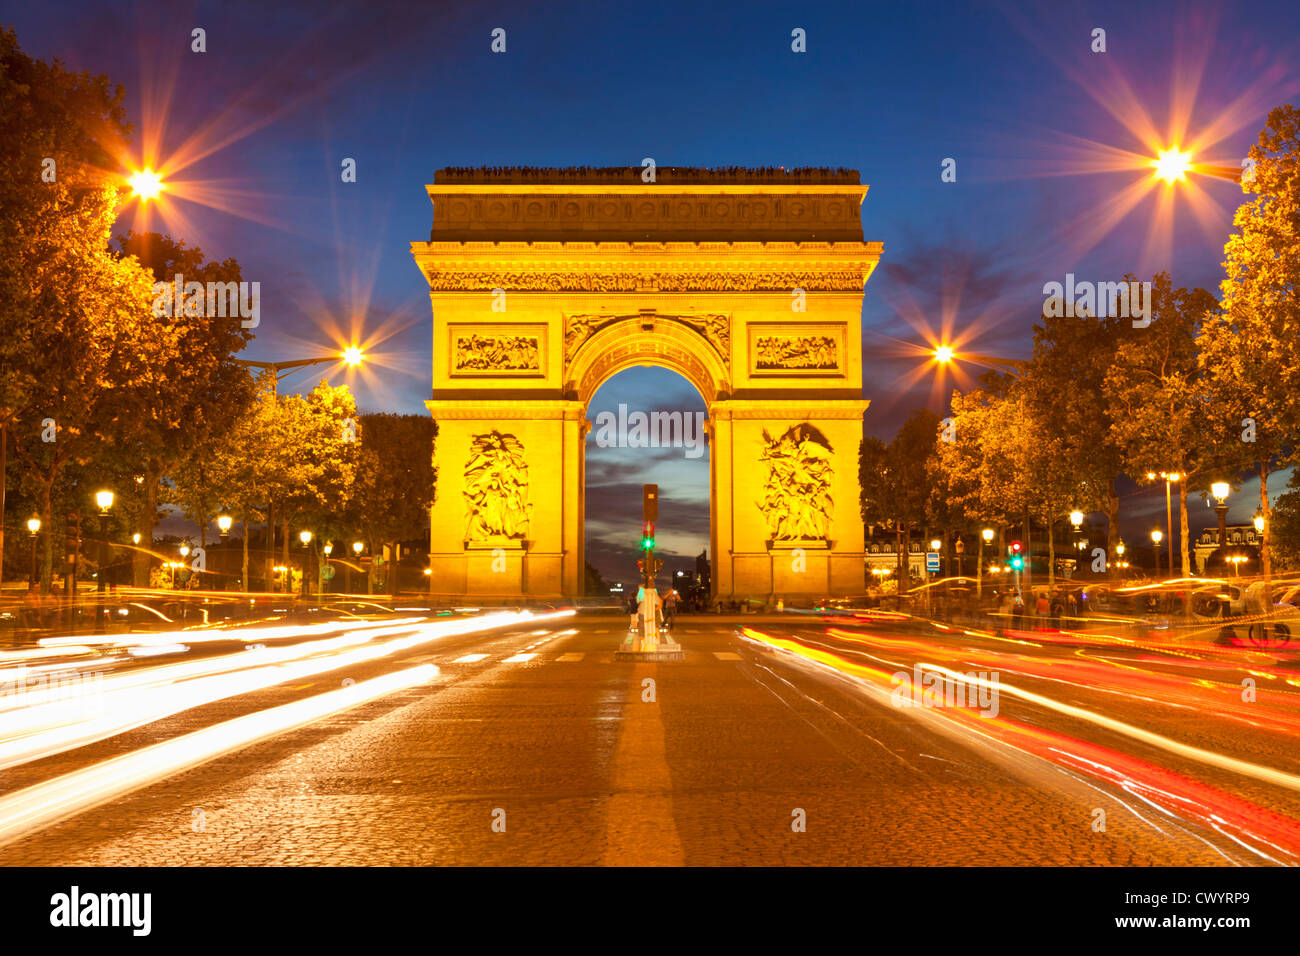 Arc Du Triomphe And Champs Elysees Traffic Light Trails At Night Stock Photo, Royalty Free Image ...